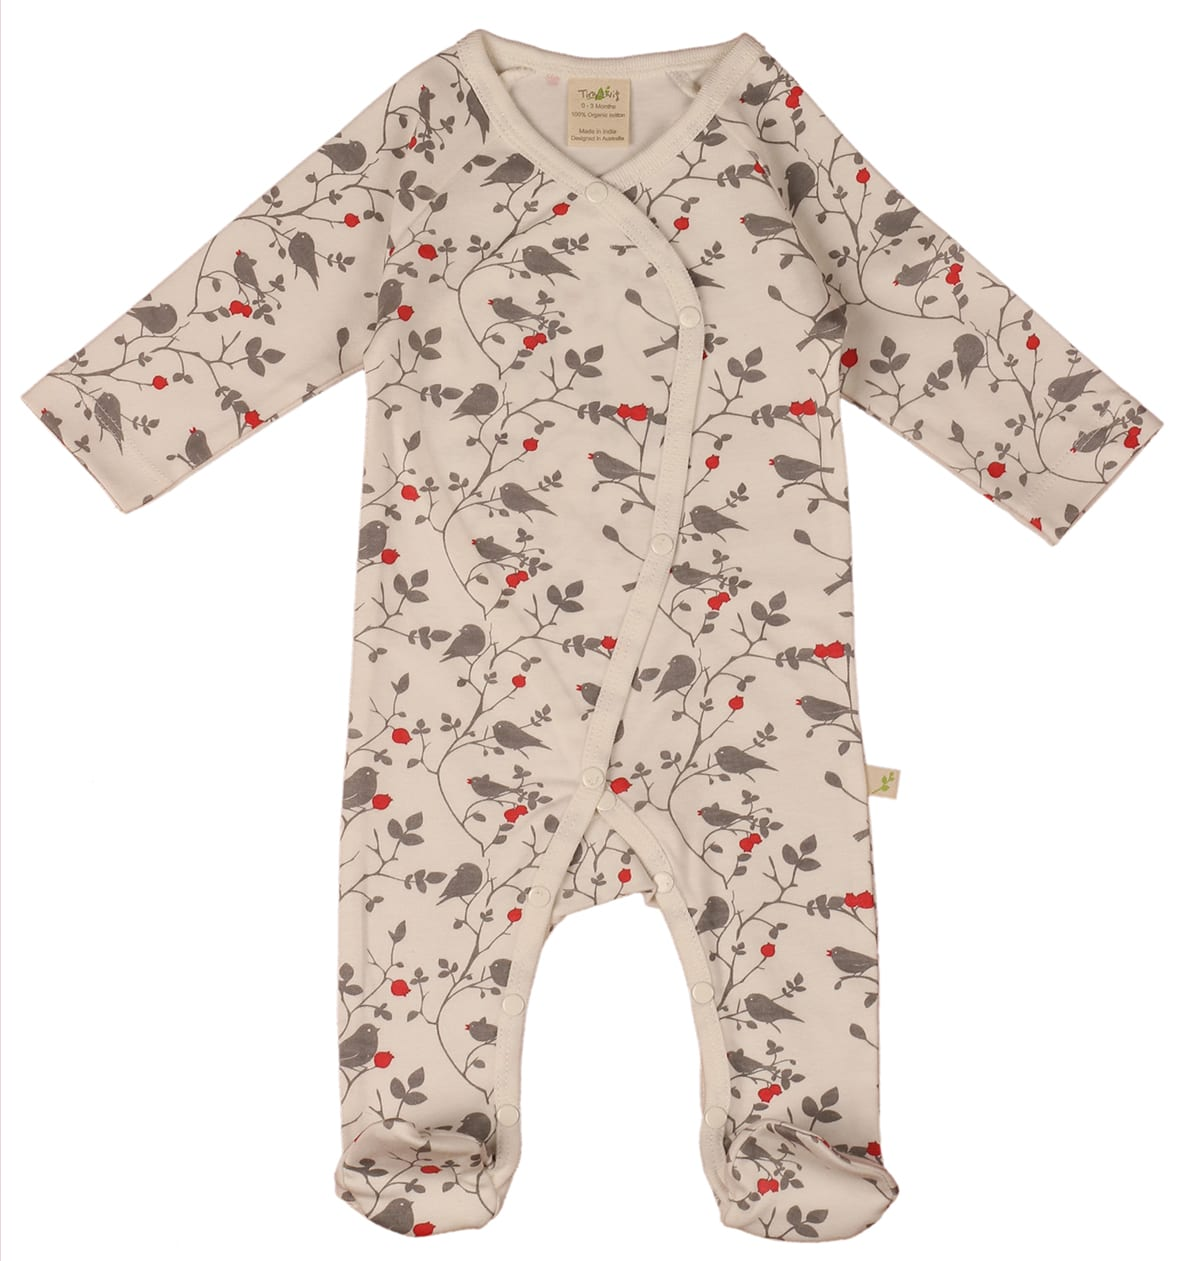 011f50e2f Baby grow suit - organic cotton   dyes to keep baby   the ...